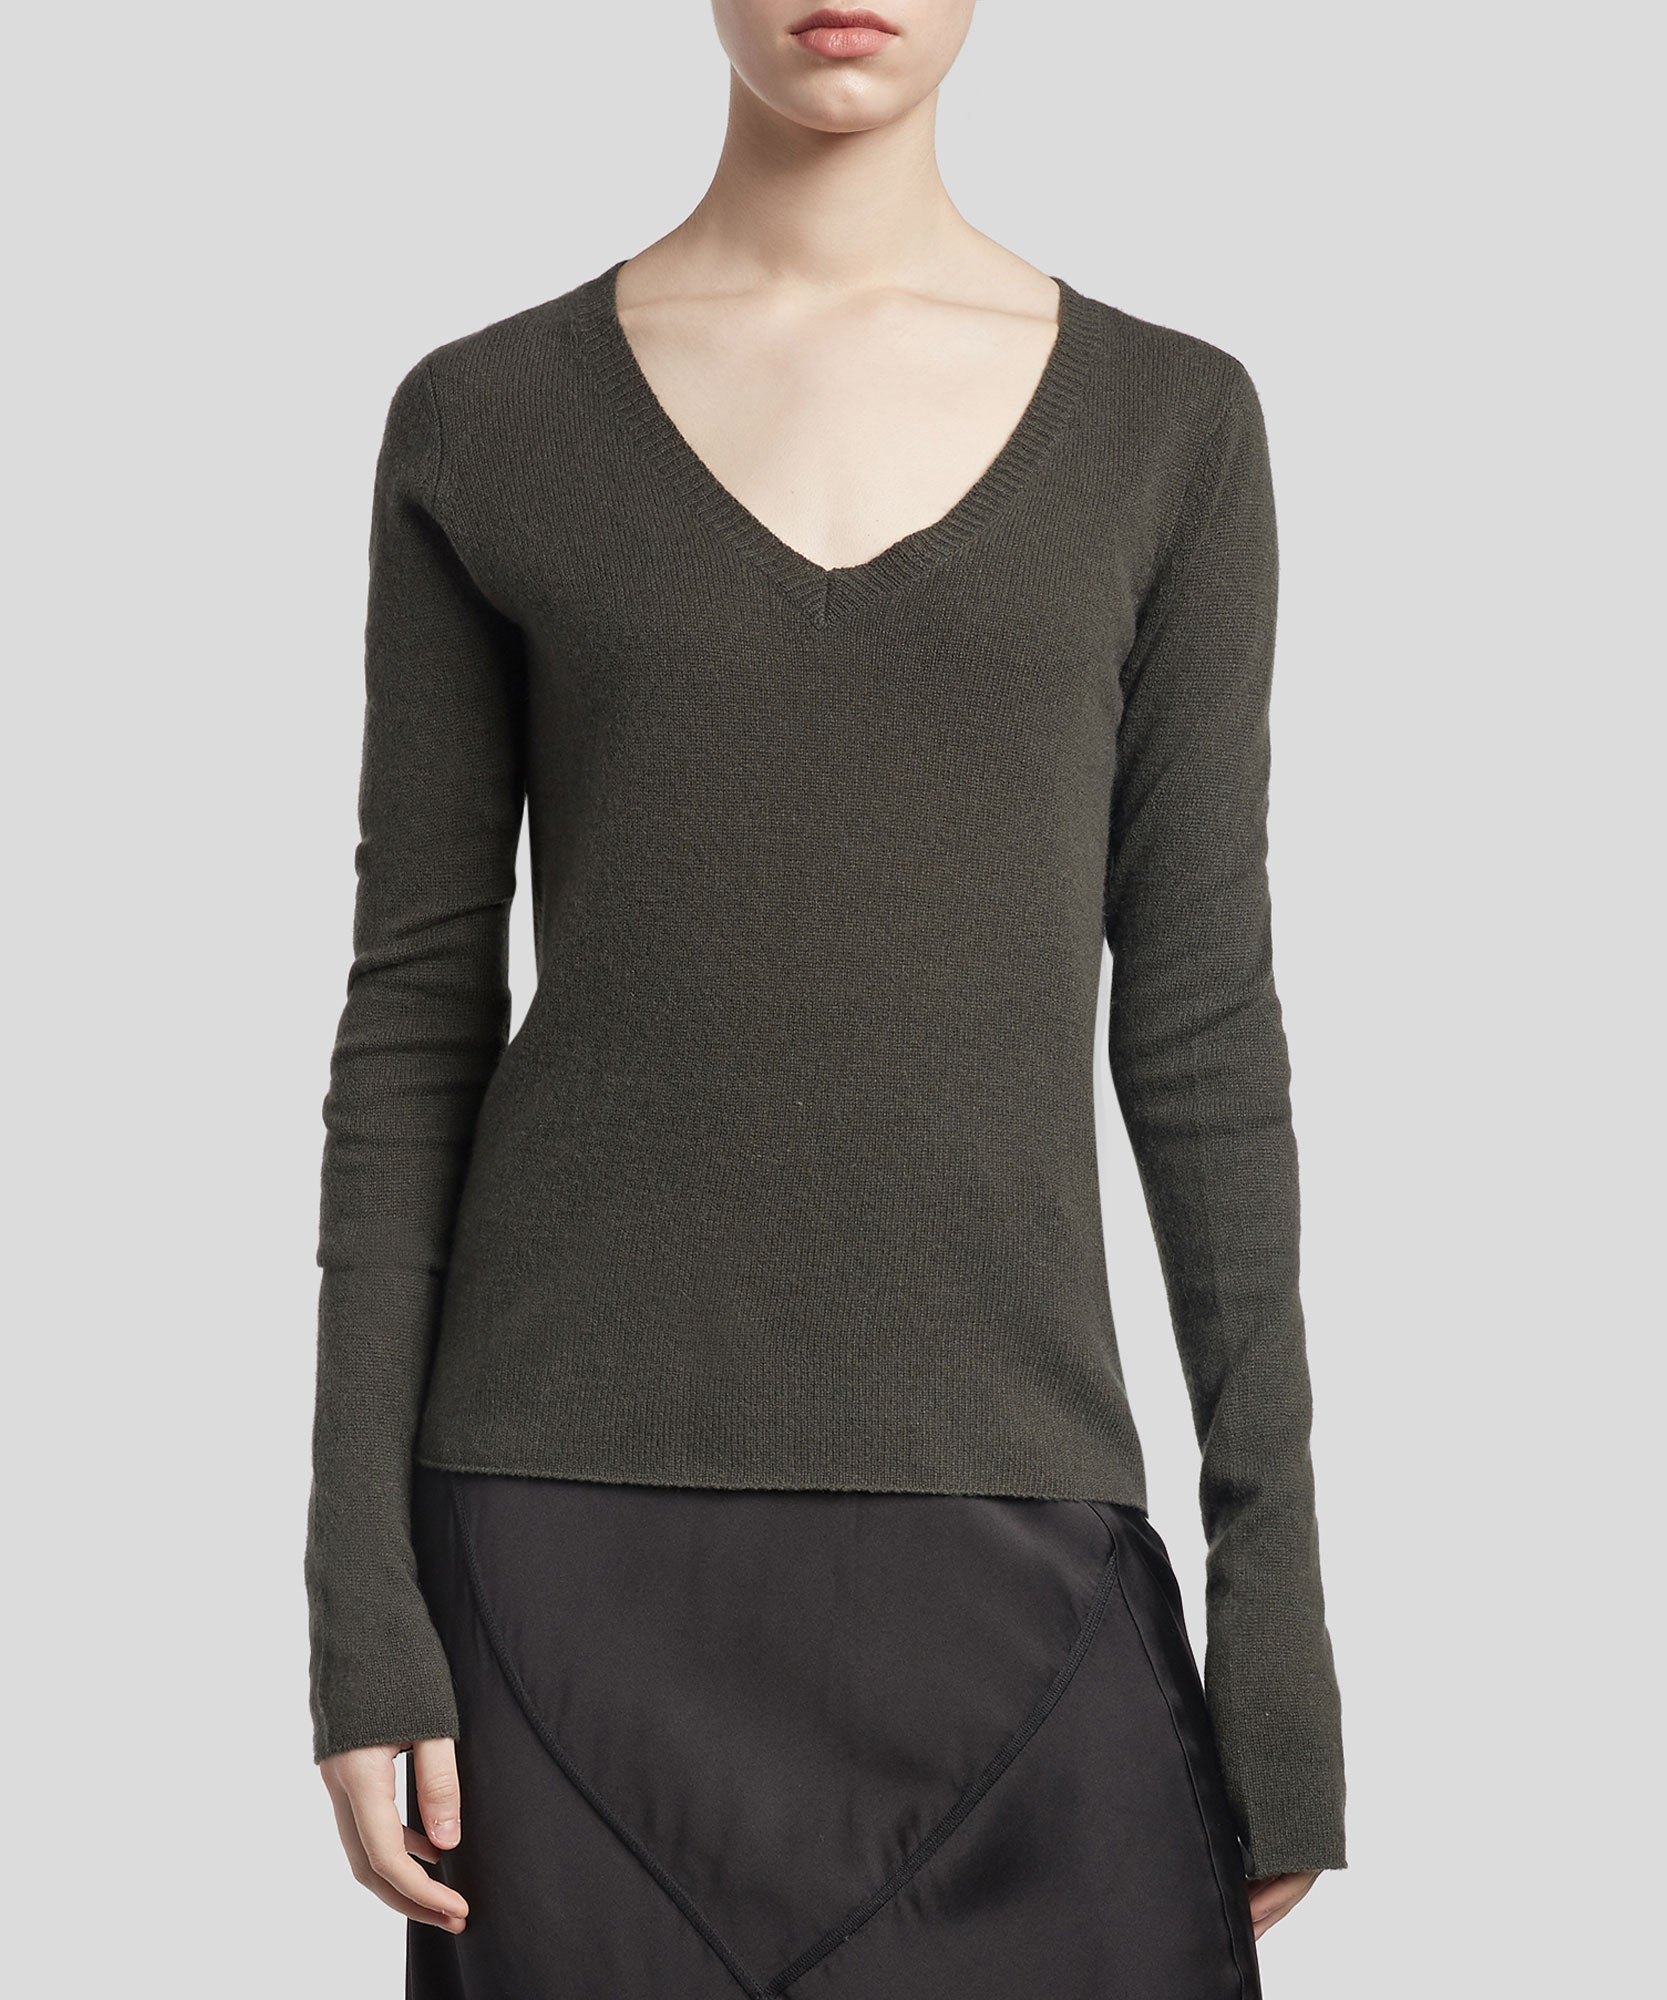 Jungle Cashmere V-Neck Sweater - Women's Luxe Sweater by ATM Anthony Thomas Melillo